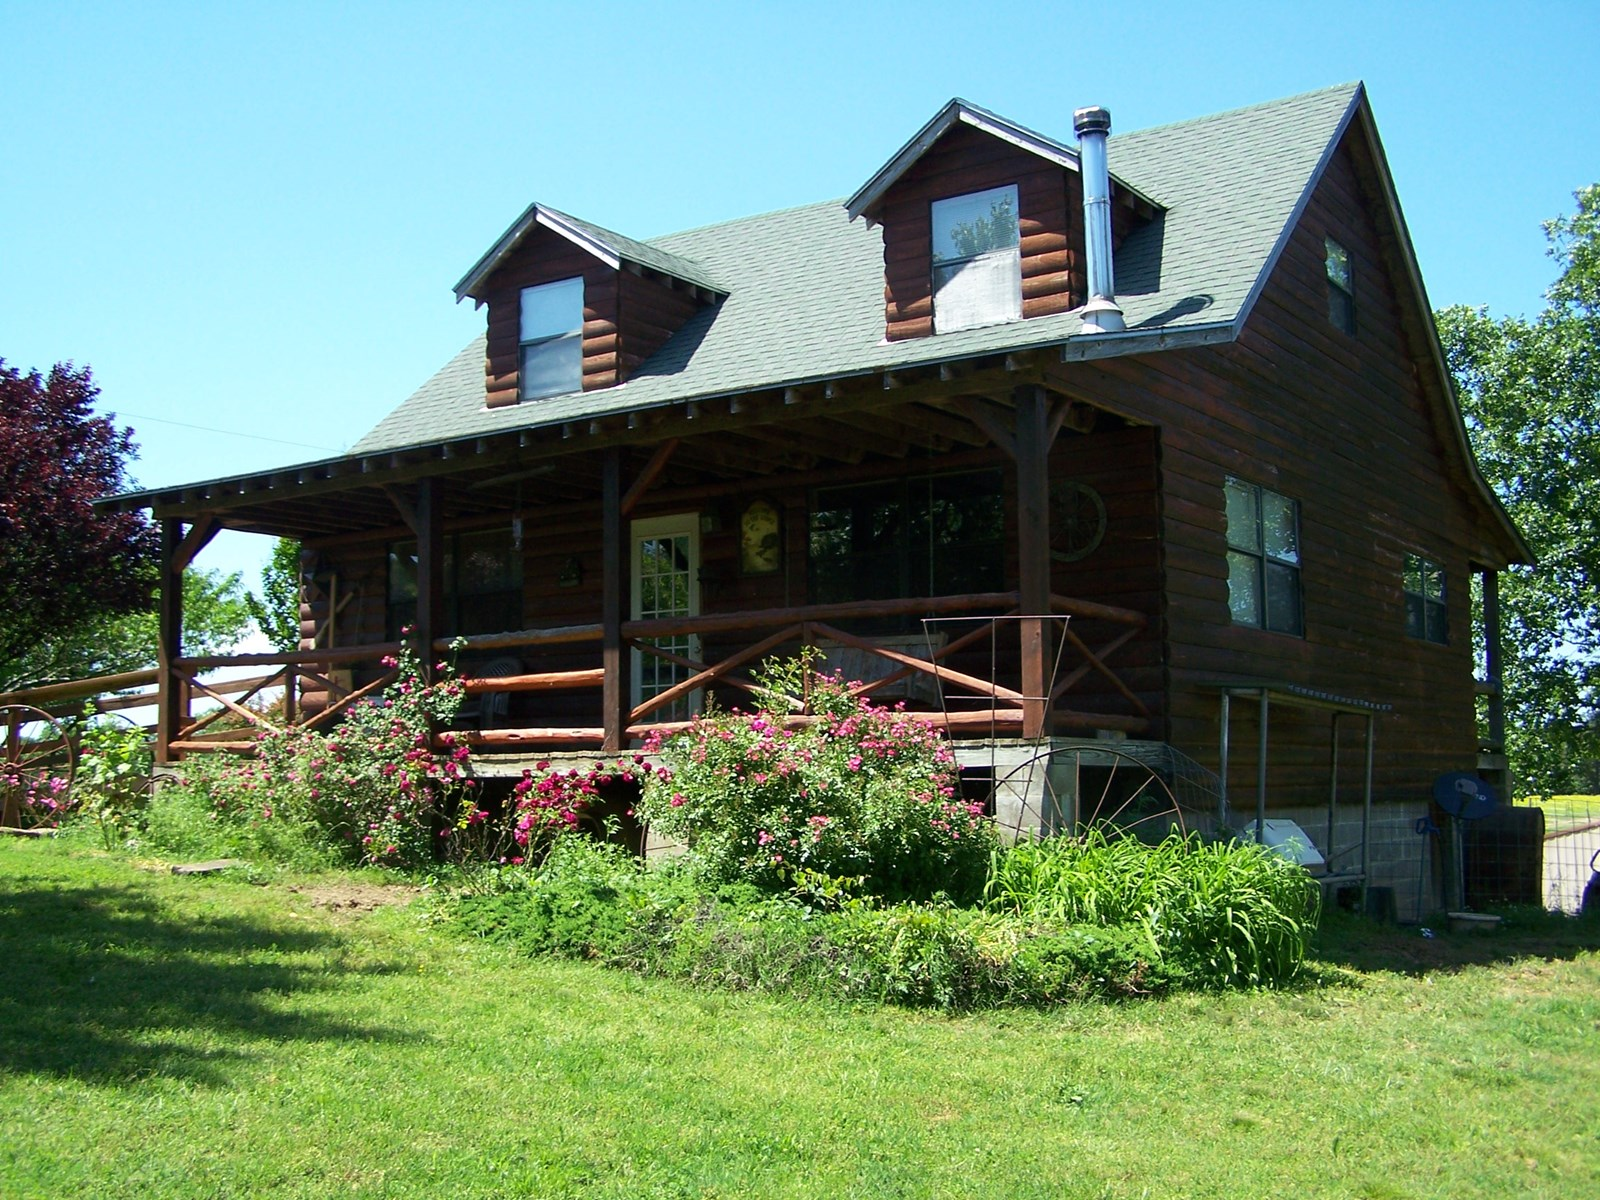 Arkansas Country Cabin on 88.88 Acres For Sale